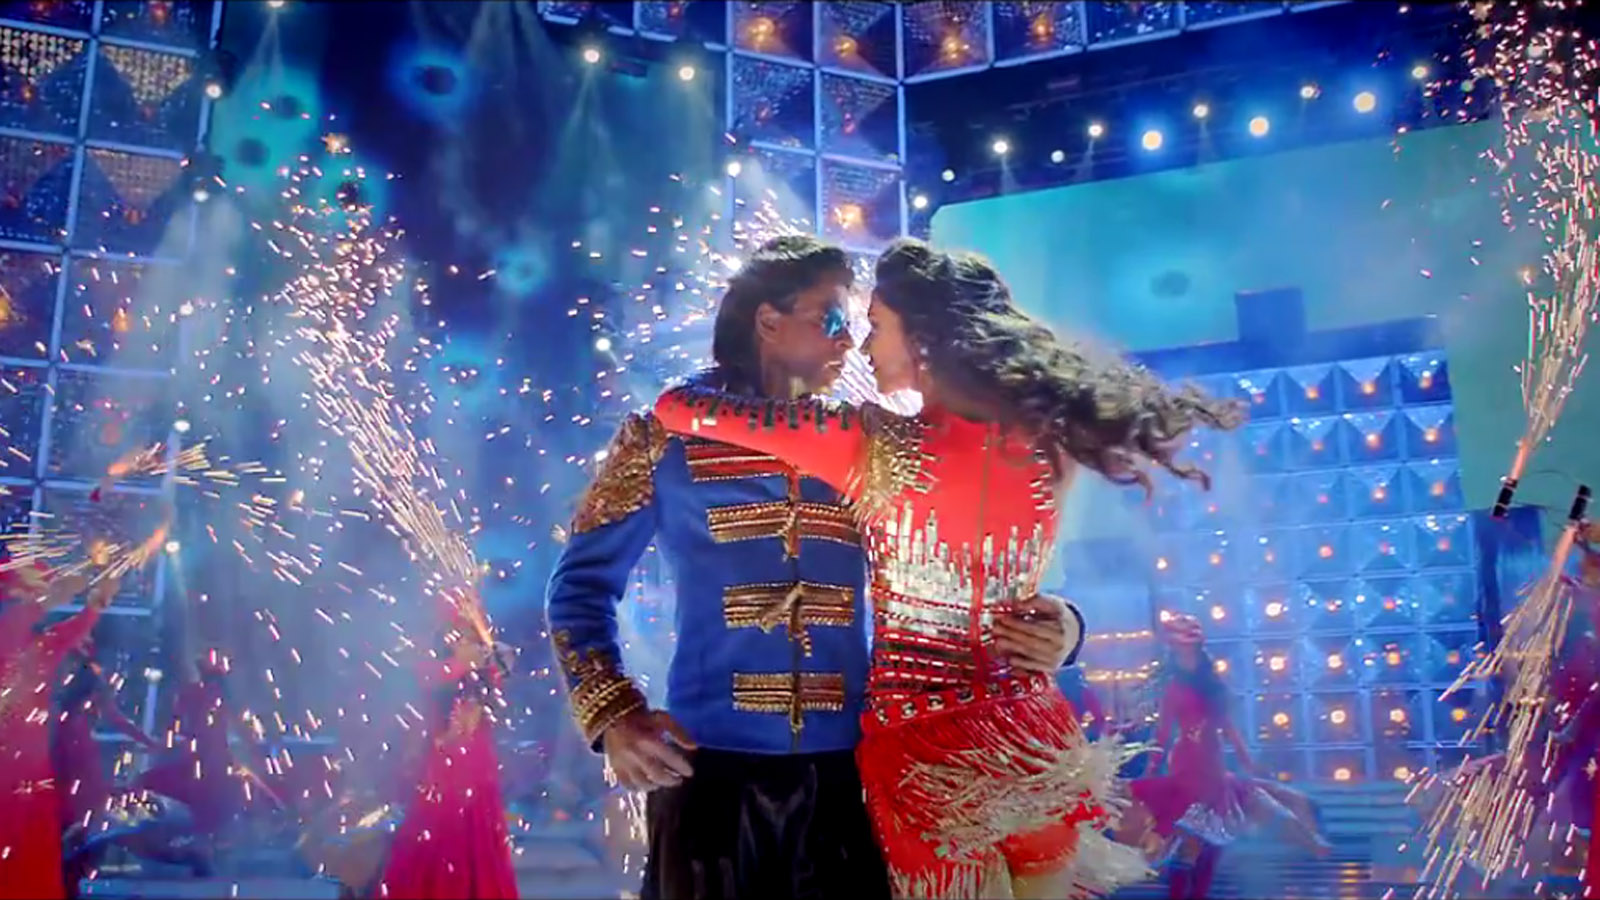 srk with deepika happy new year 2014 movie full hd wallpaper